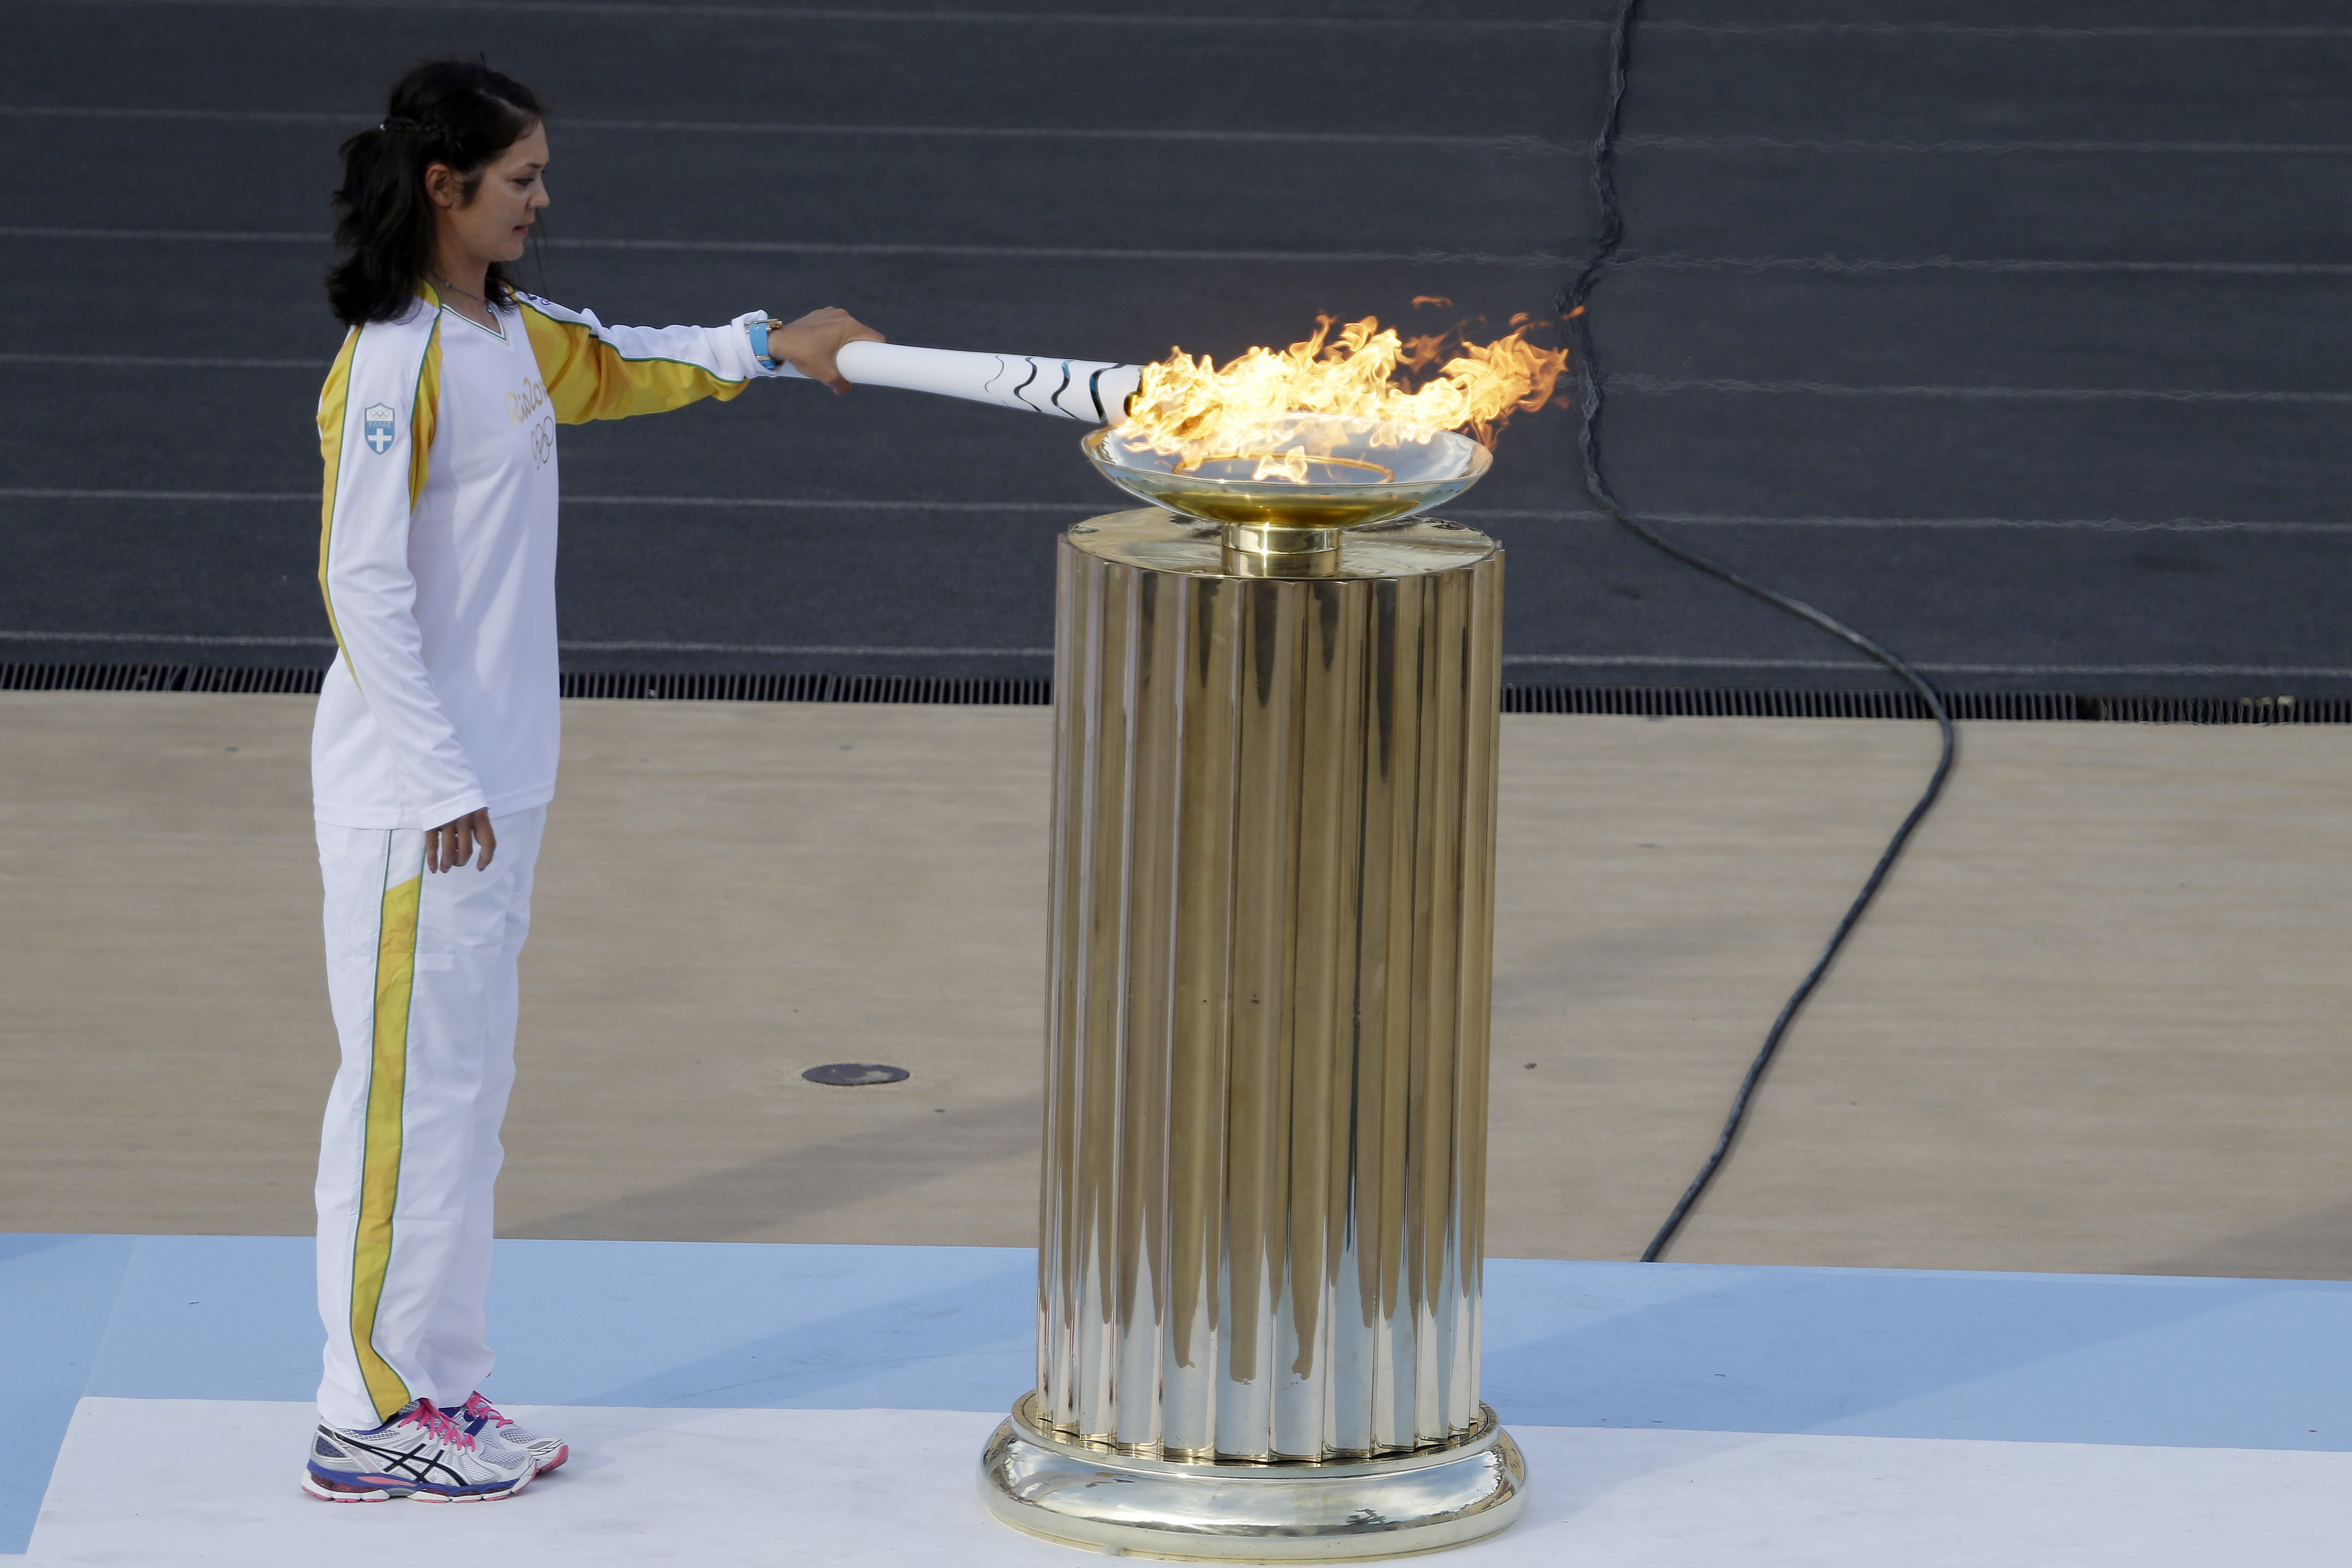 Rowing World Champion Katerina Nikolaidou of Greece lights the cauldron during the handover ceremony for the Olympic Flame at Panathinean stadium in Athens, Wednesday, April 27, 2016. The flame arrives in Brazil on May 3, and will be relayed across the va